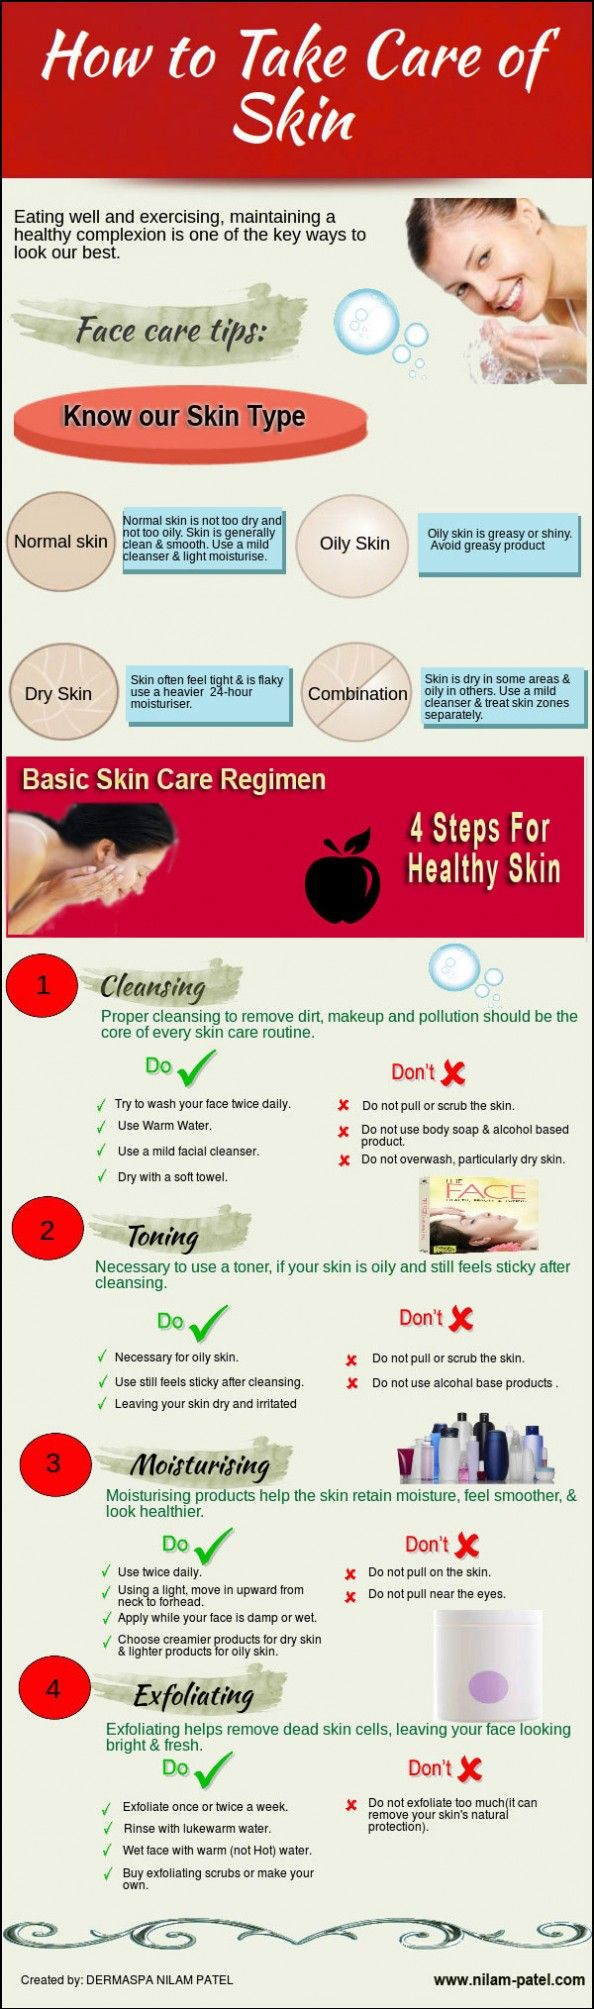 How to Take Care of Skin Infographic #skincare #healthyskin